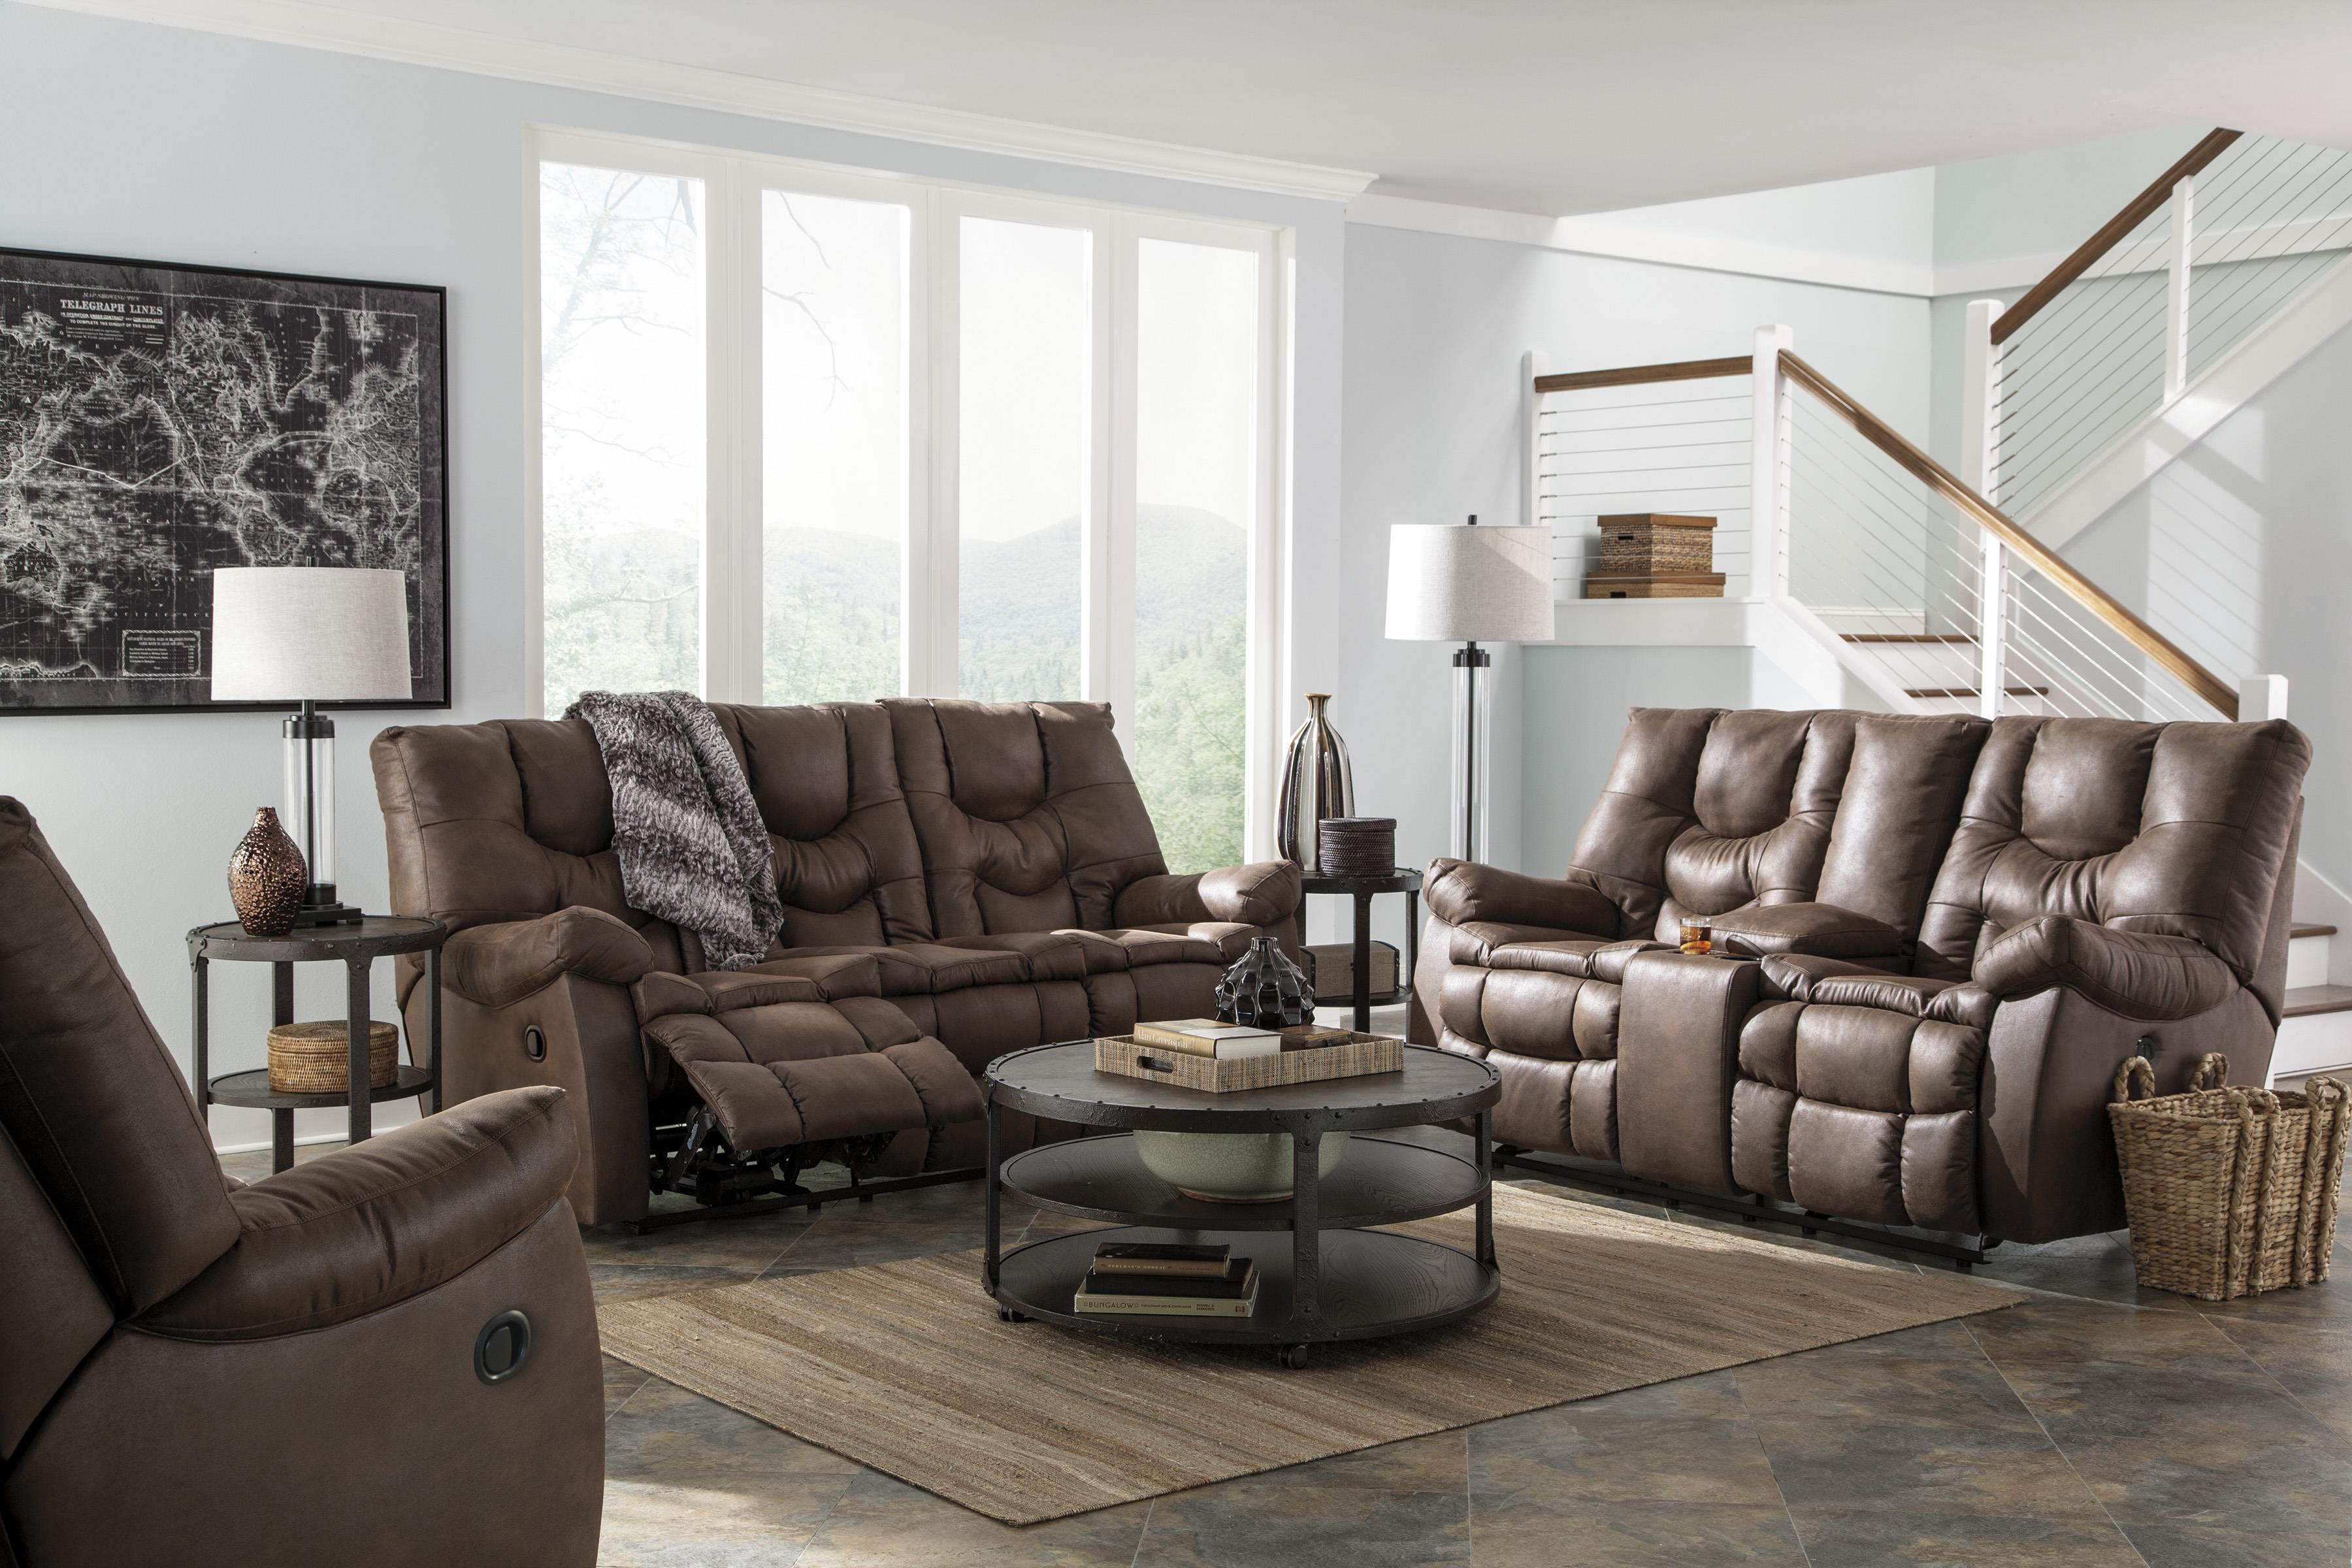 Benchcraft Burgett Reclining Living Room Group - Item Number: 92201 Living Room Group 3